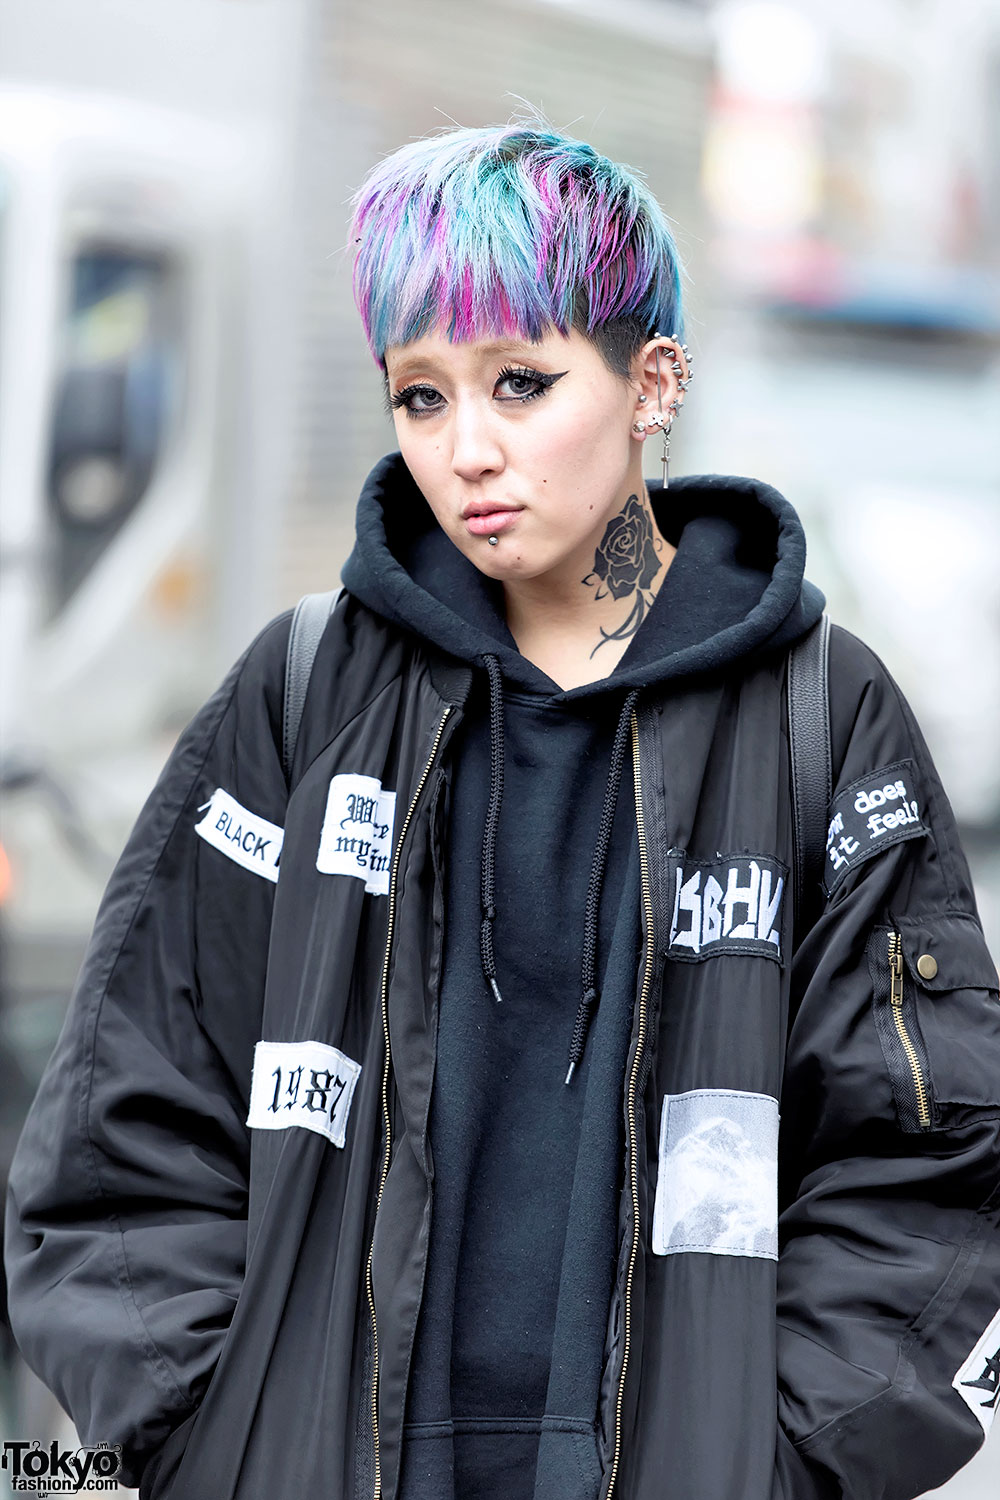 Harajuku Girl W Bomber Jacket Neck Tattoo Colorful Hair Yosuke